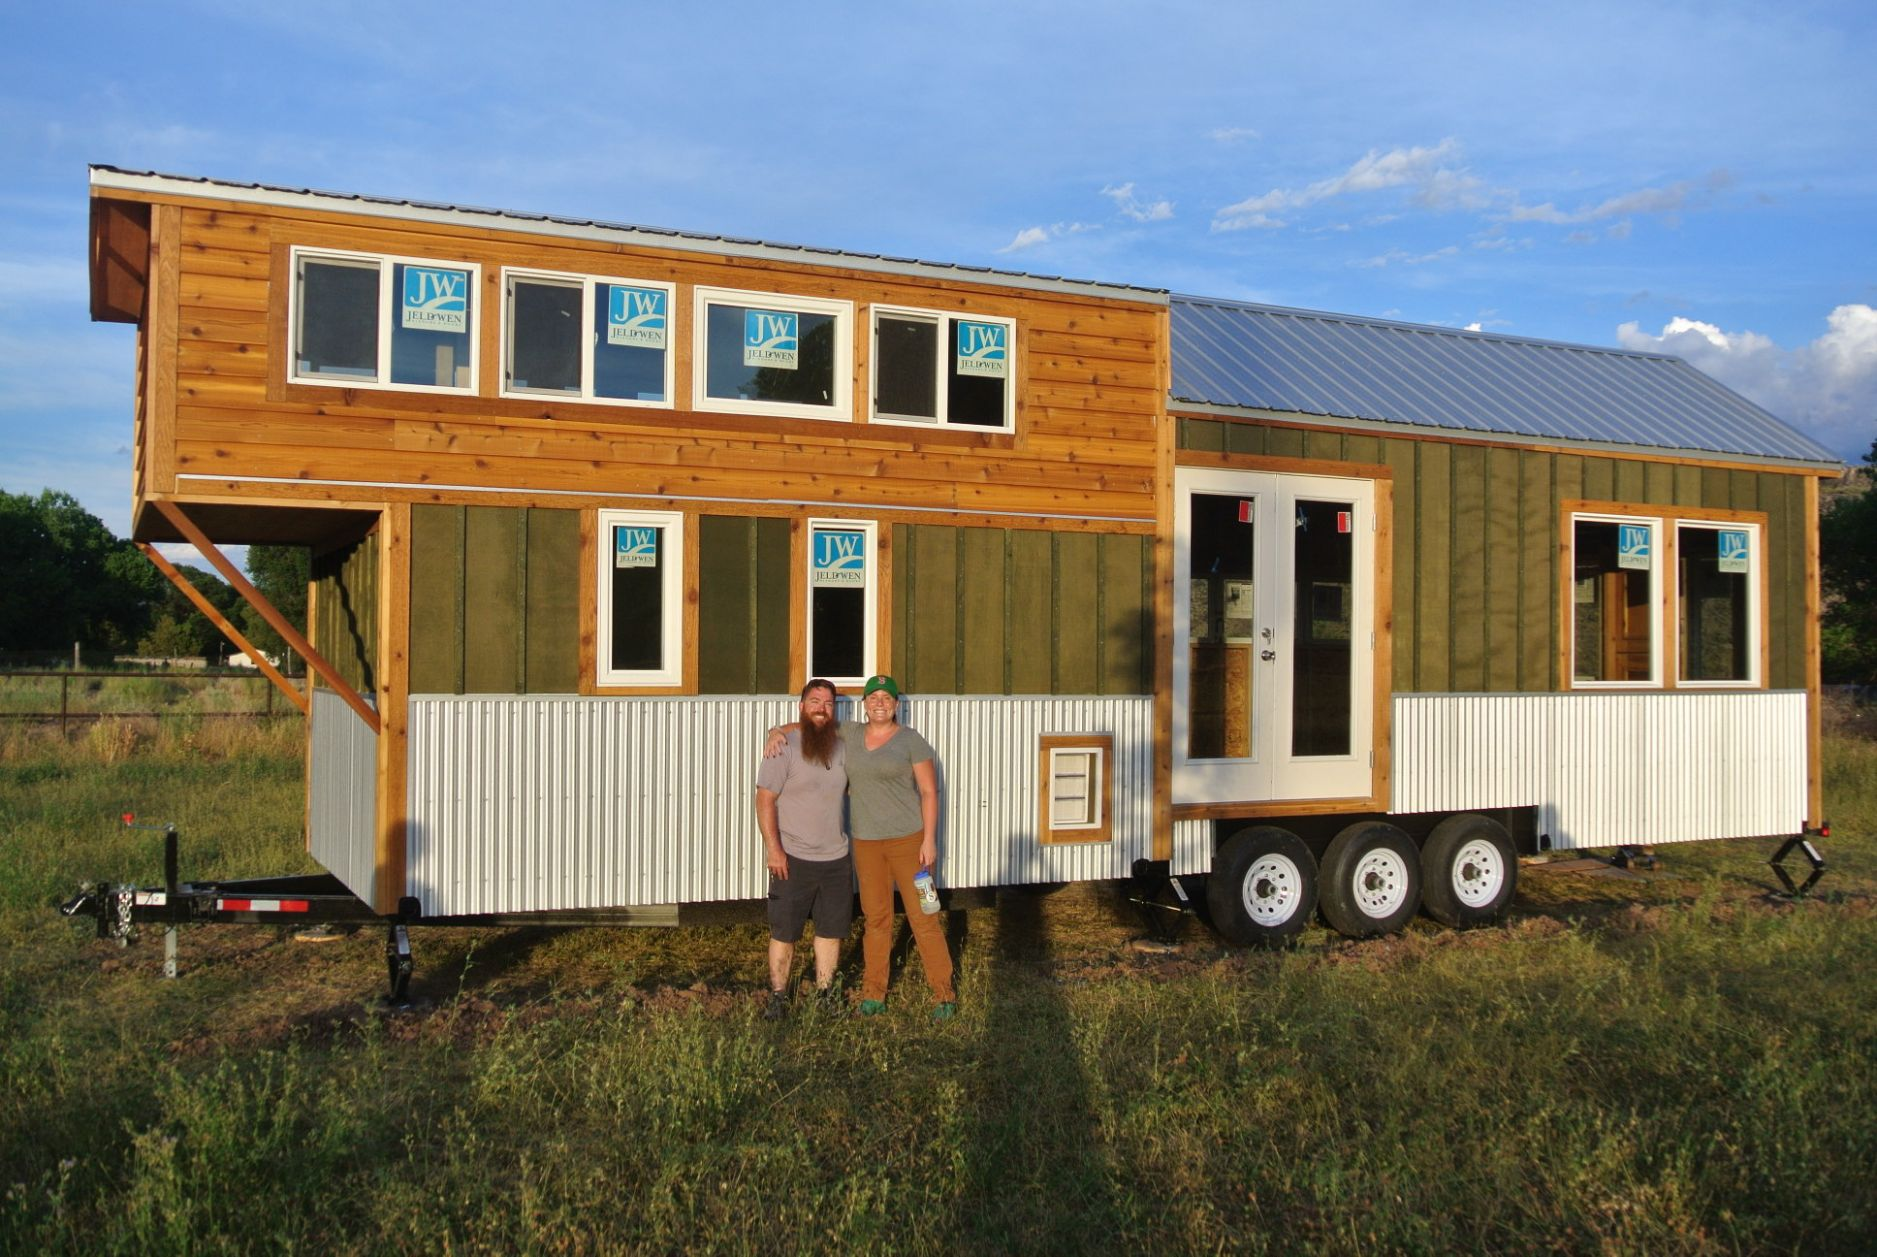 11'x11' Moby Dick Tiny House Shell - Rocky Mountain Tiny Houses